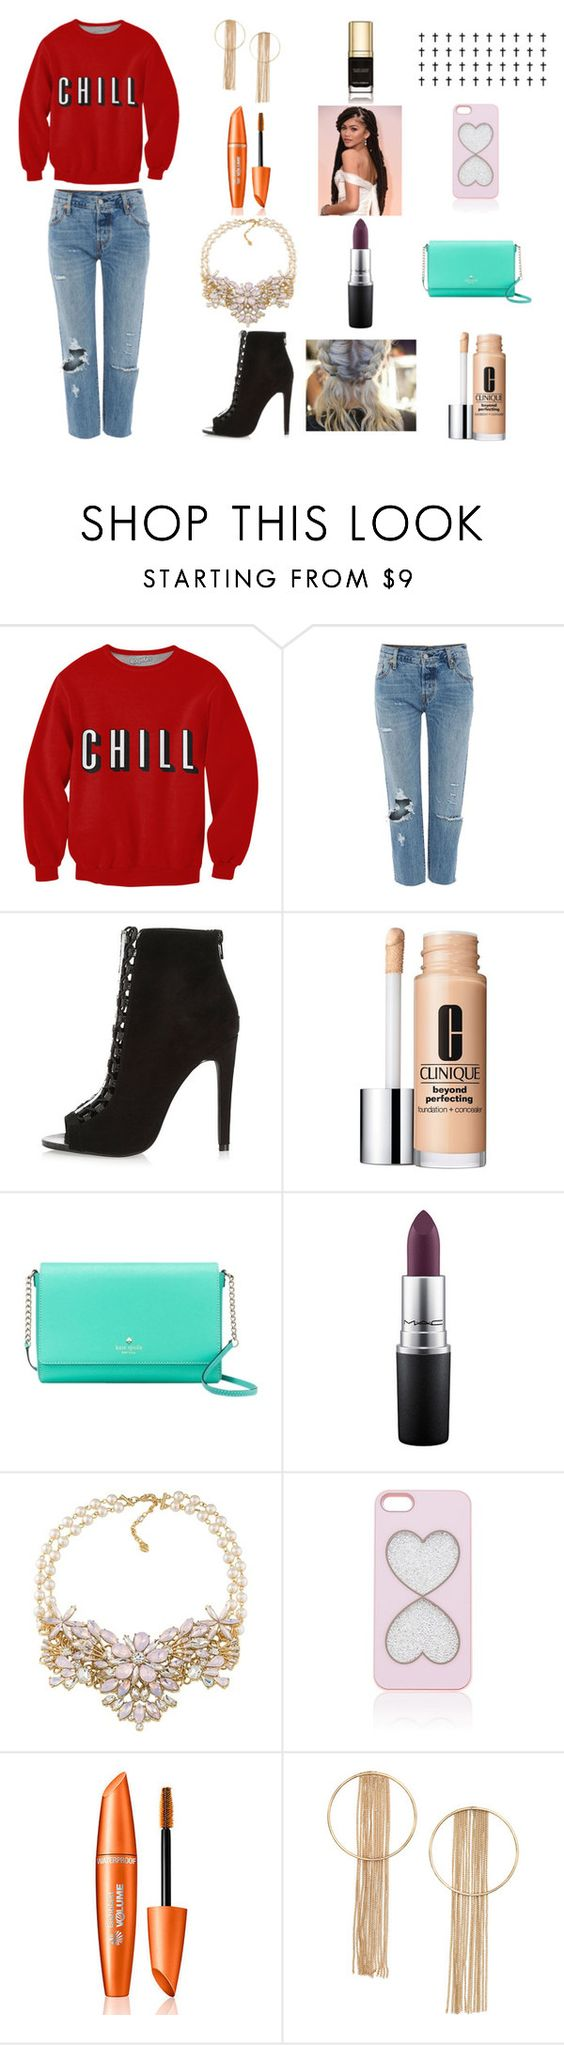 """""""//crybaby//"""" by reythefrog ❤ liked on Polyvore featuring Levi's, River Island, Clinique, Kate Spade, Carolee, Forever New and Dolce&Gabbana"""